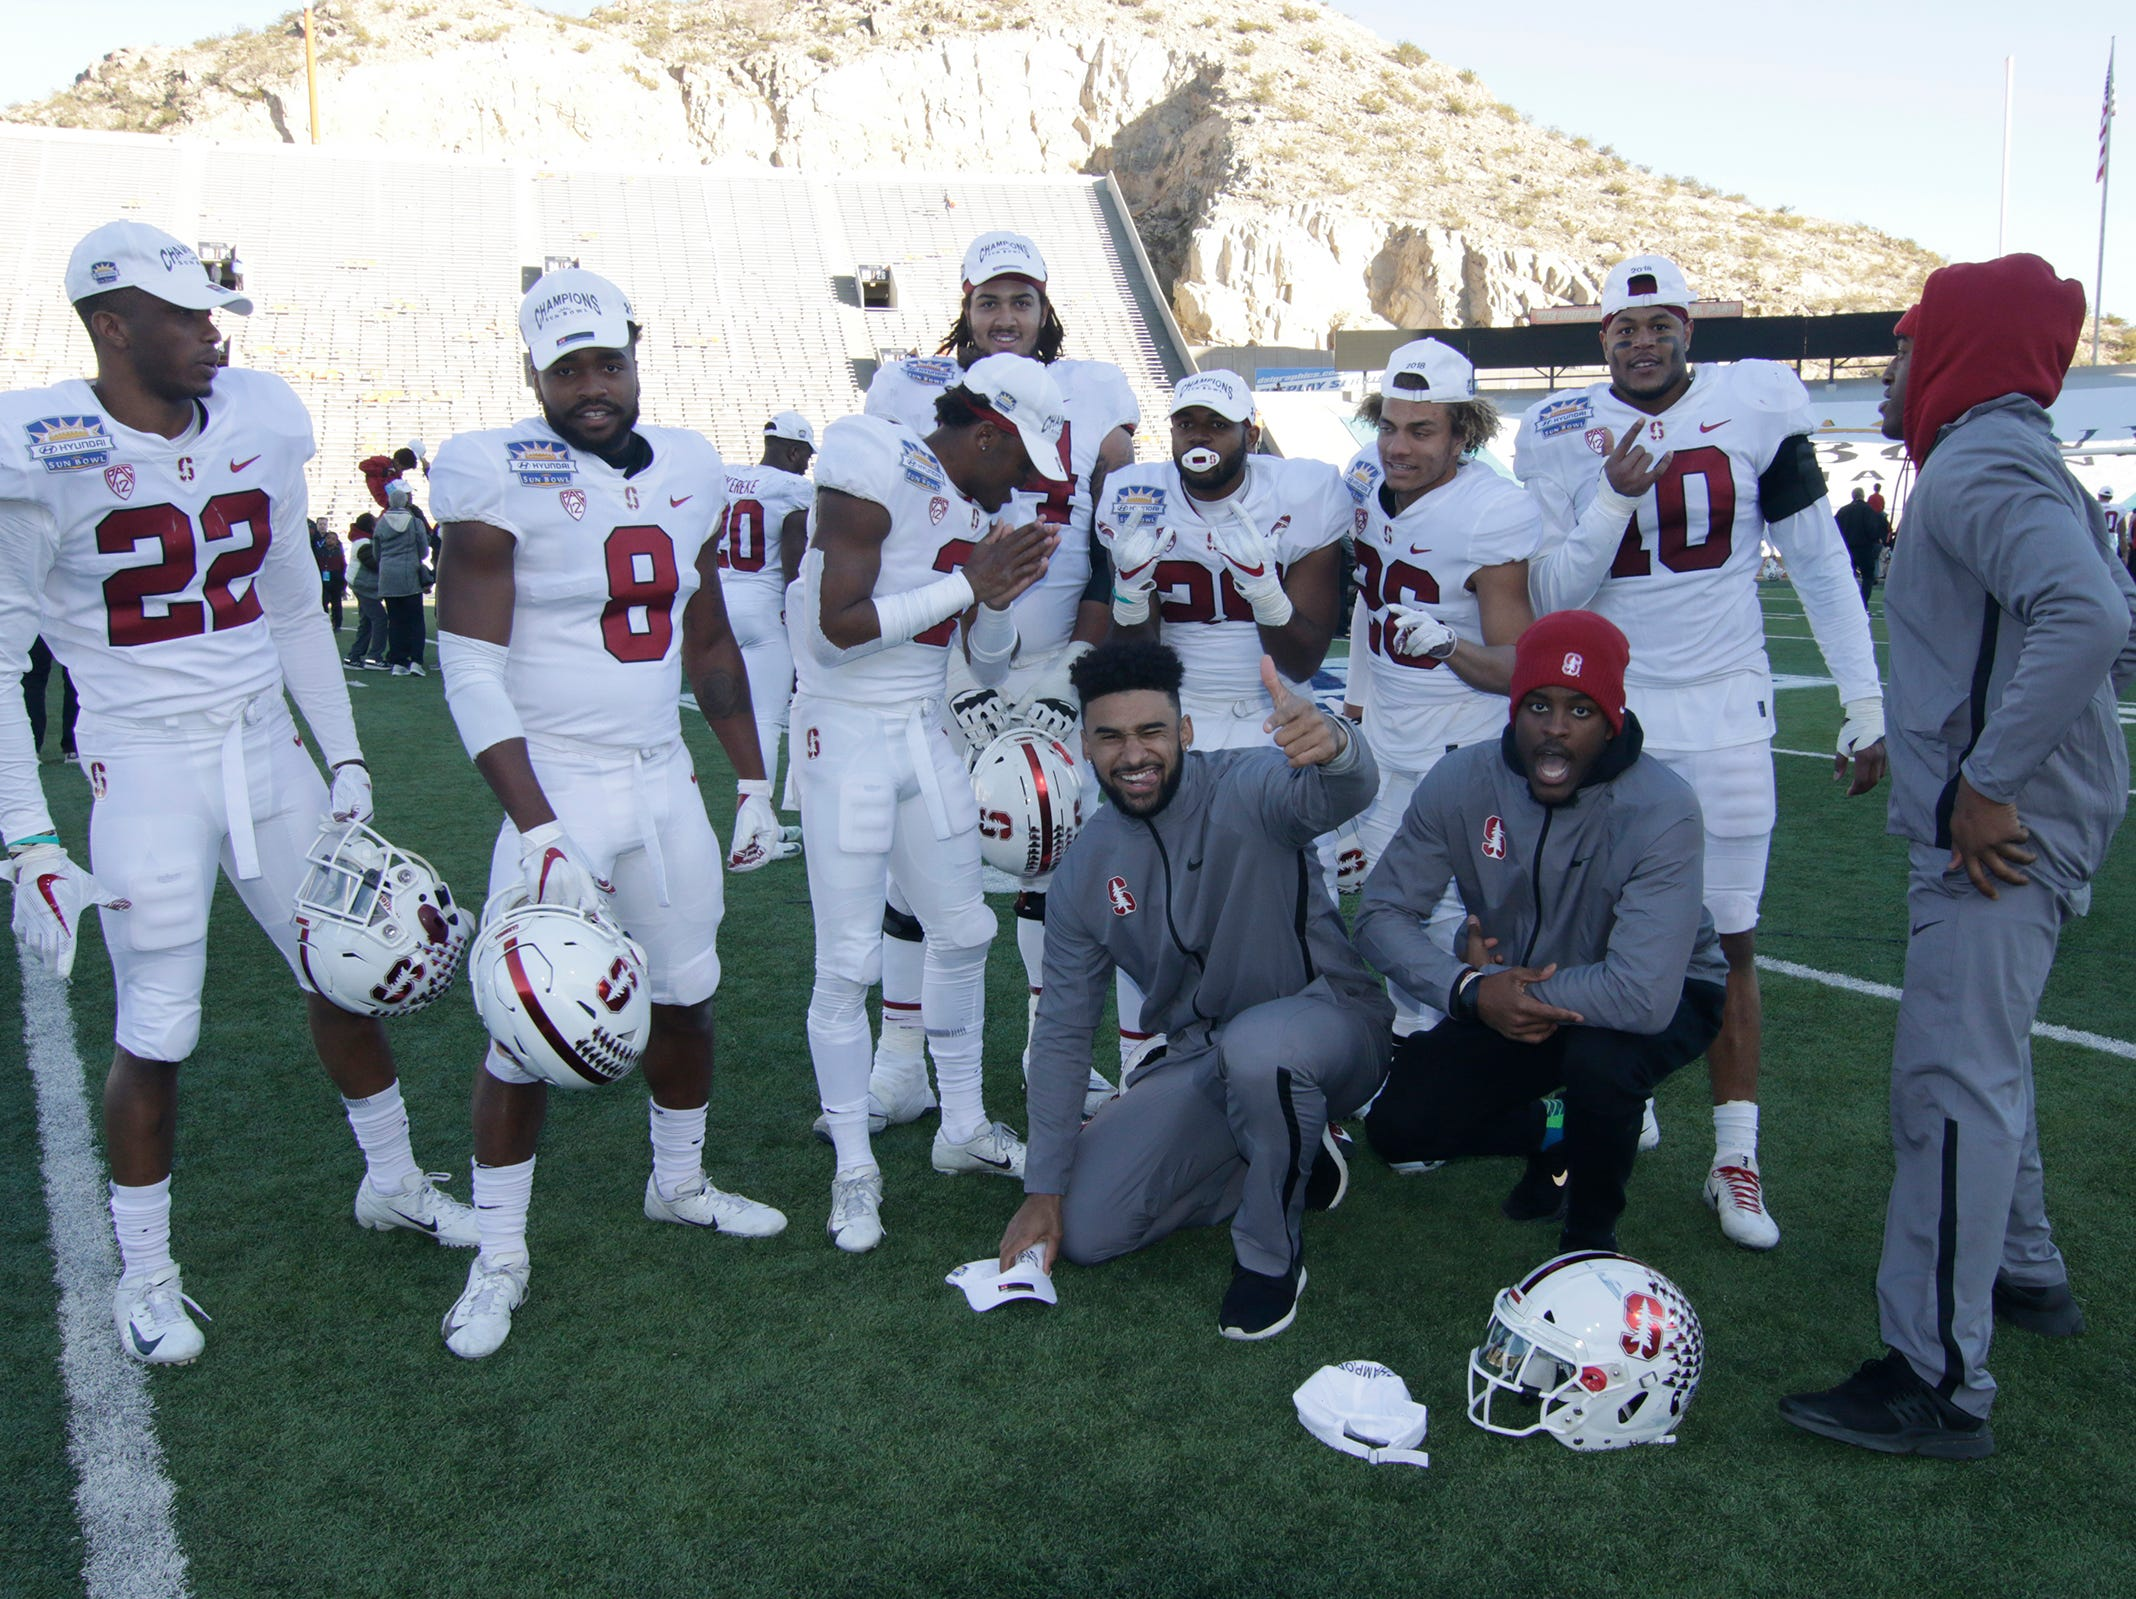 Members of the Stanford football team pose for a photo after they defeated the Pitt Panthers 14-13 in the 85th Hyundai Sun Bowl.